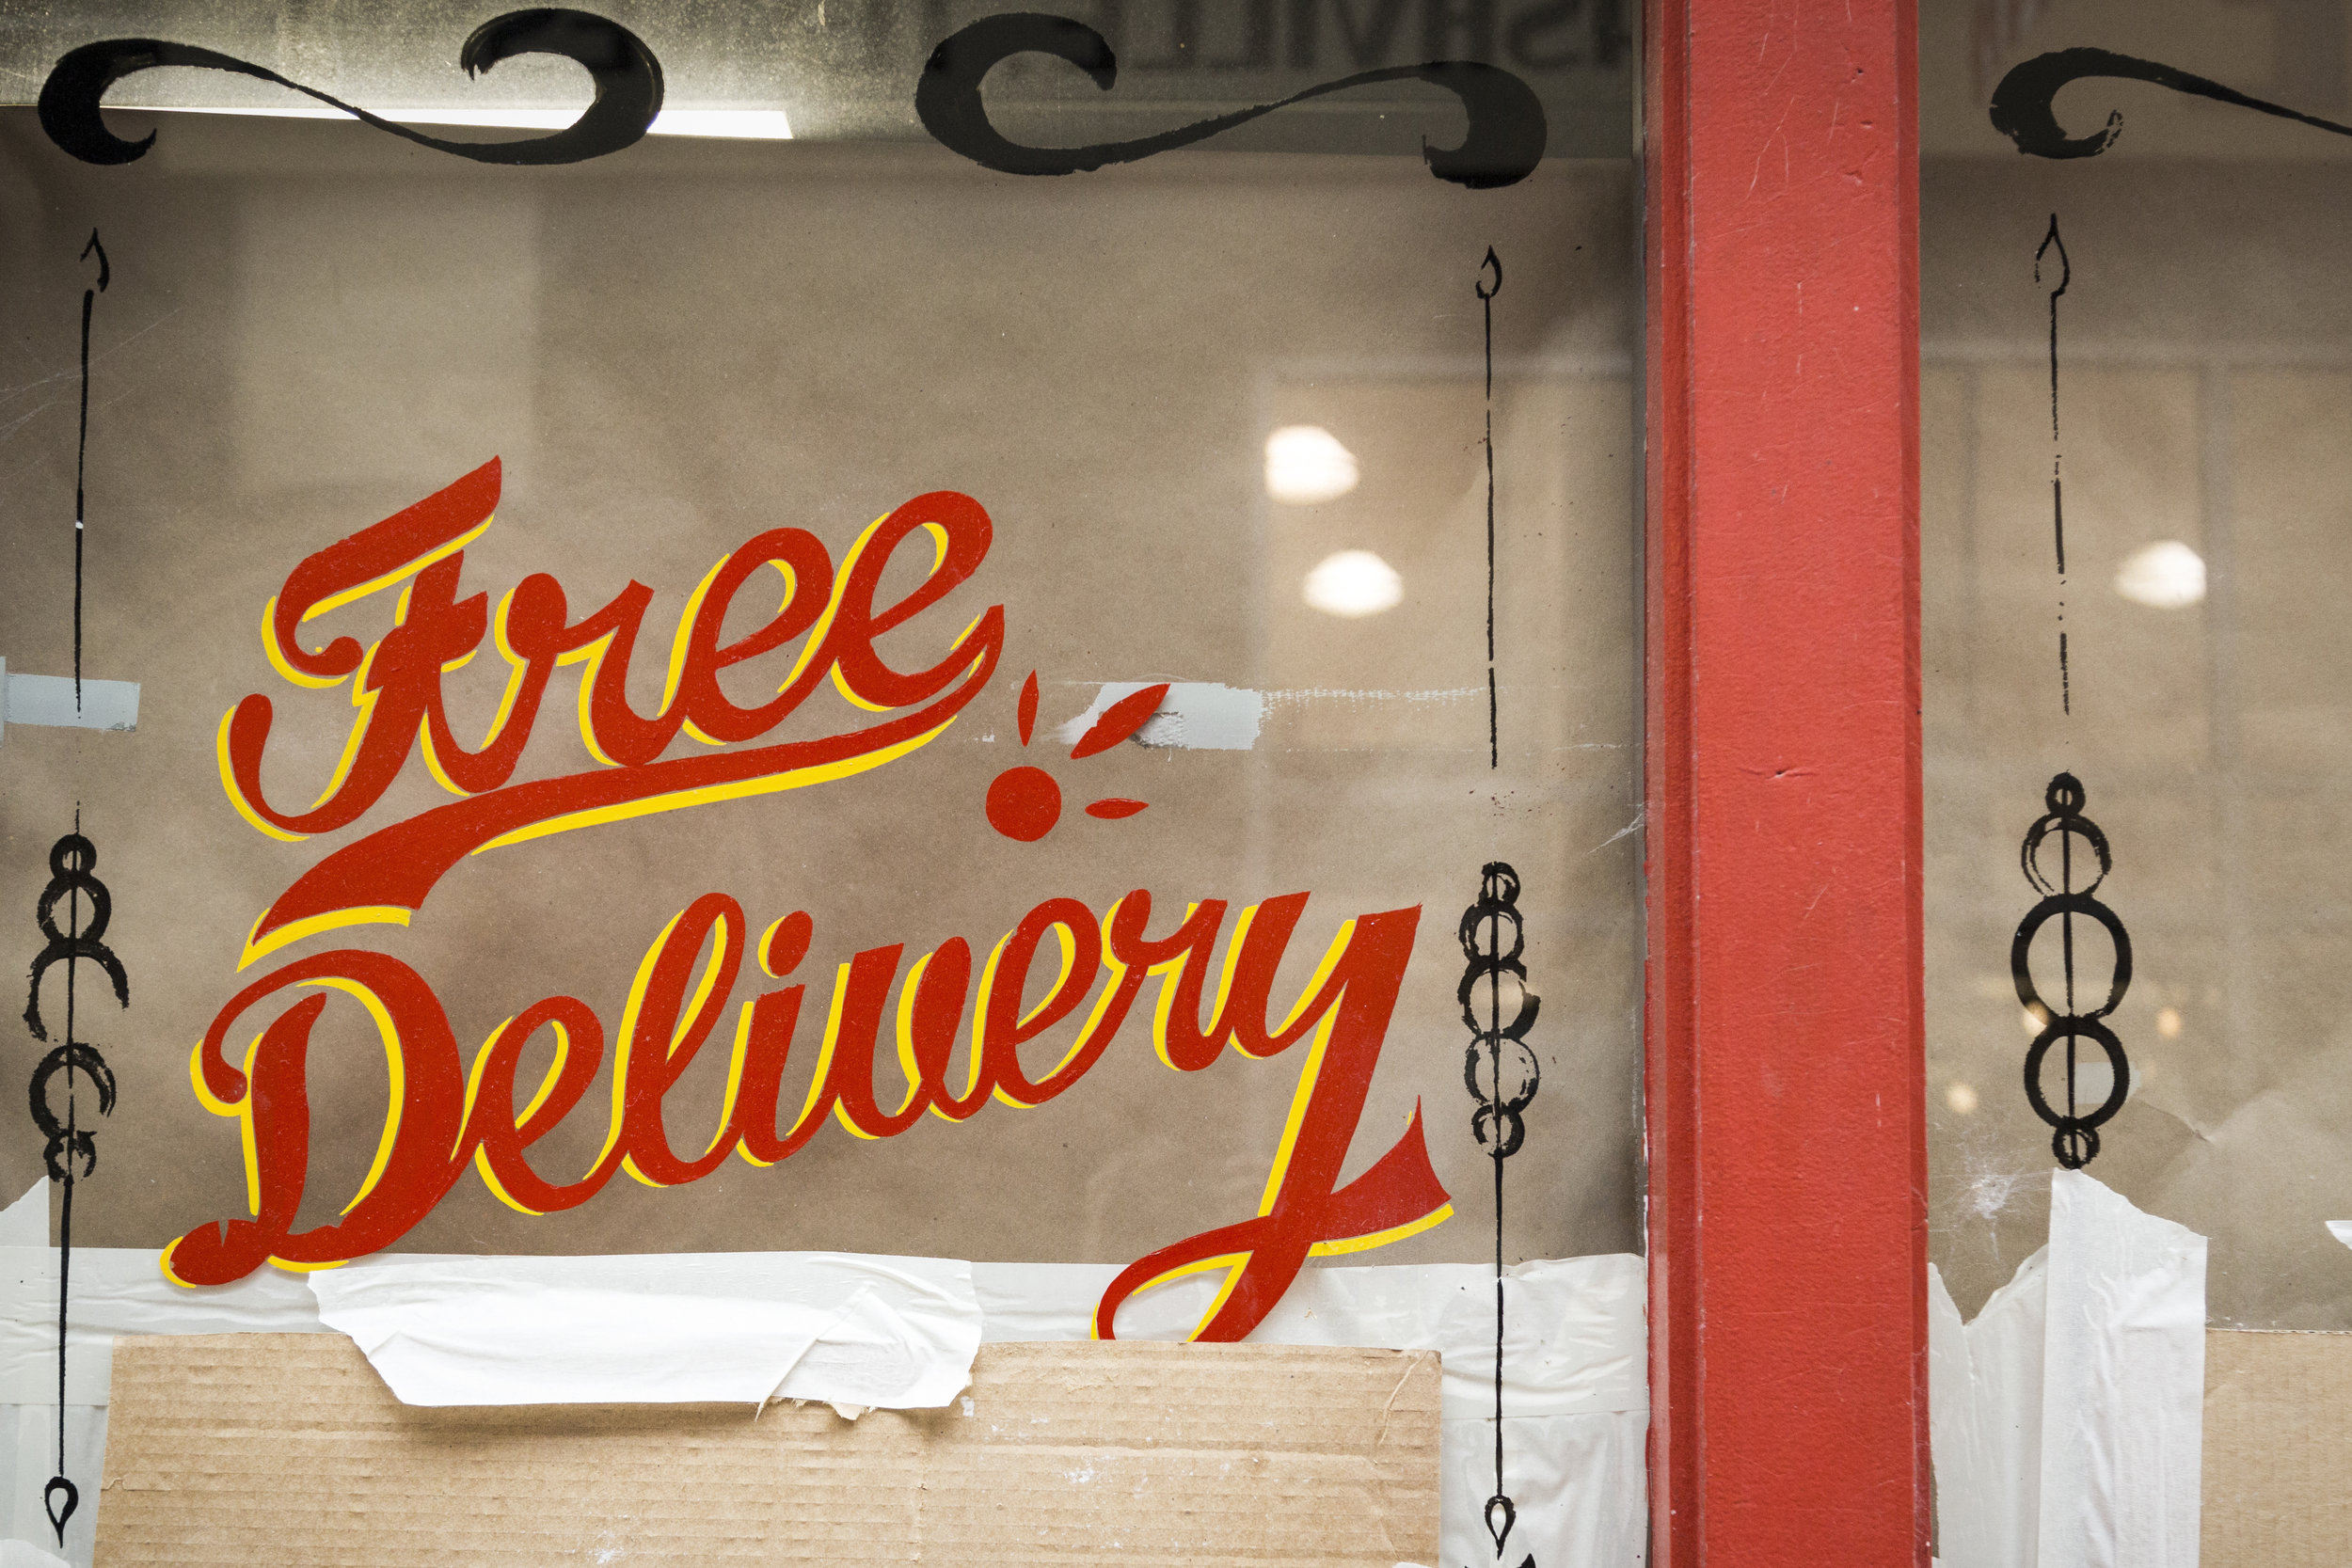 We delivery it to your door… - Delivery is free in the South Hills. You'll receive a delivery schedule when you place your order. We also send you an email confirmation when your bacon has been delivered. If you've gifted bacon to someone else, we'll reach out to them and take care of everything.